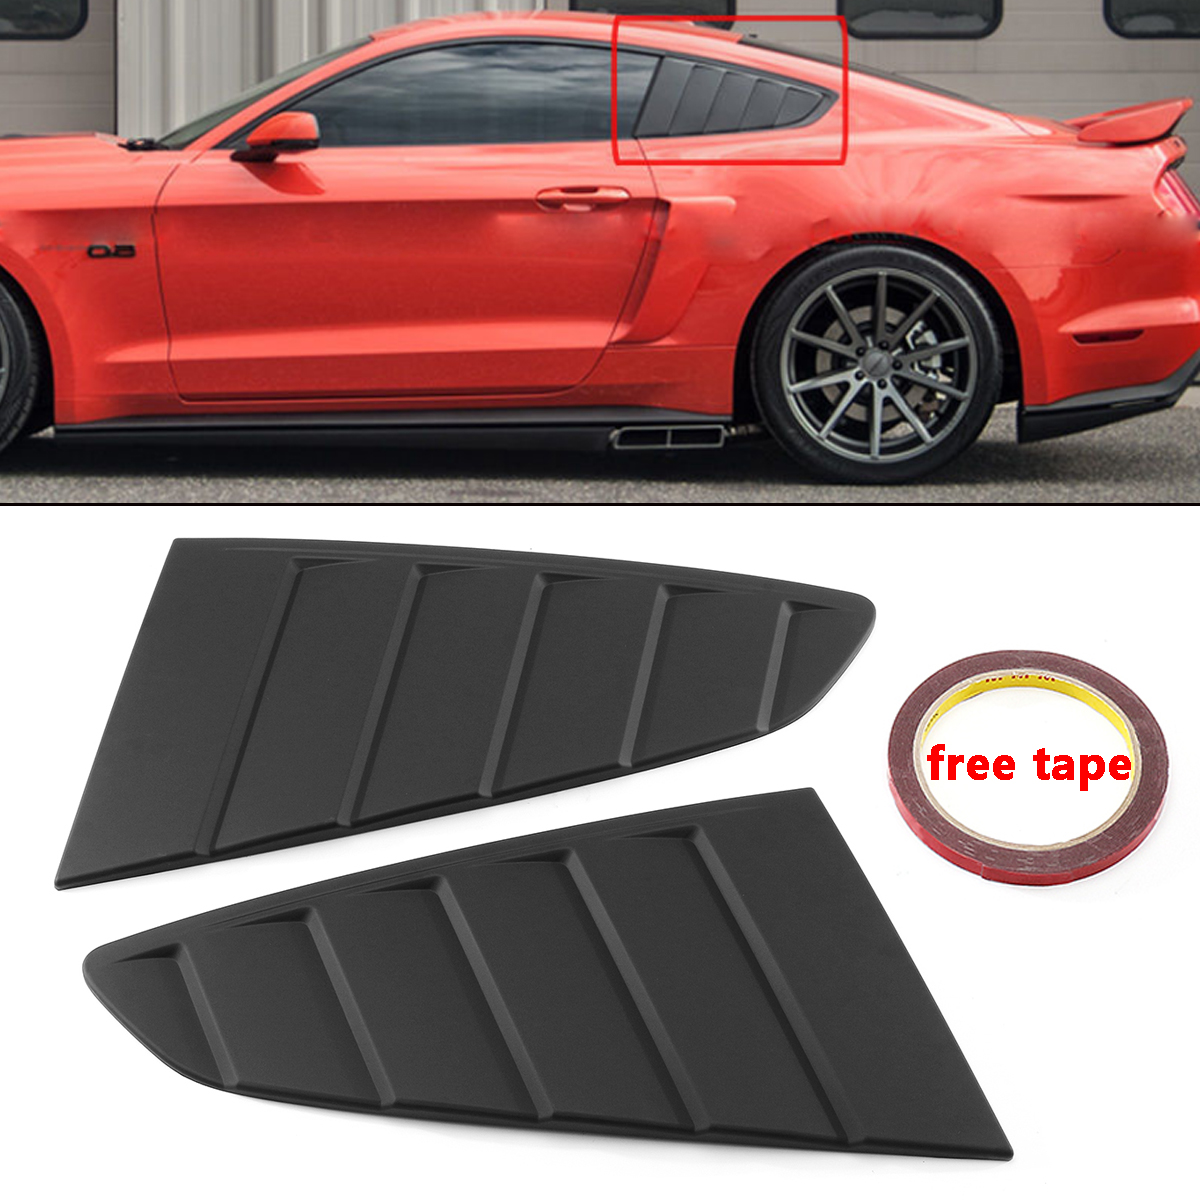 2x Car Window Quarter Louver Car Side Vent Scoop Cover For Ford For Mustang 2 Door 2015 2018 For Coupe Model GT C Style